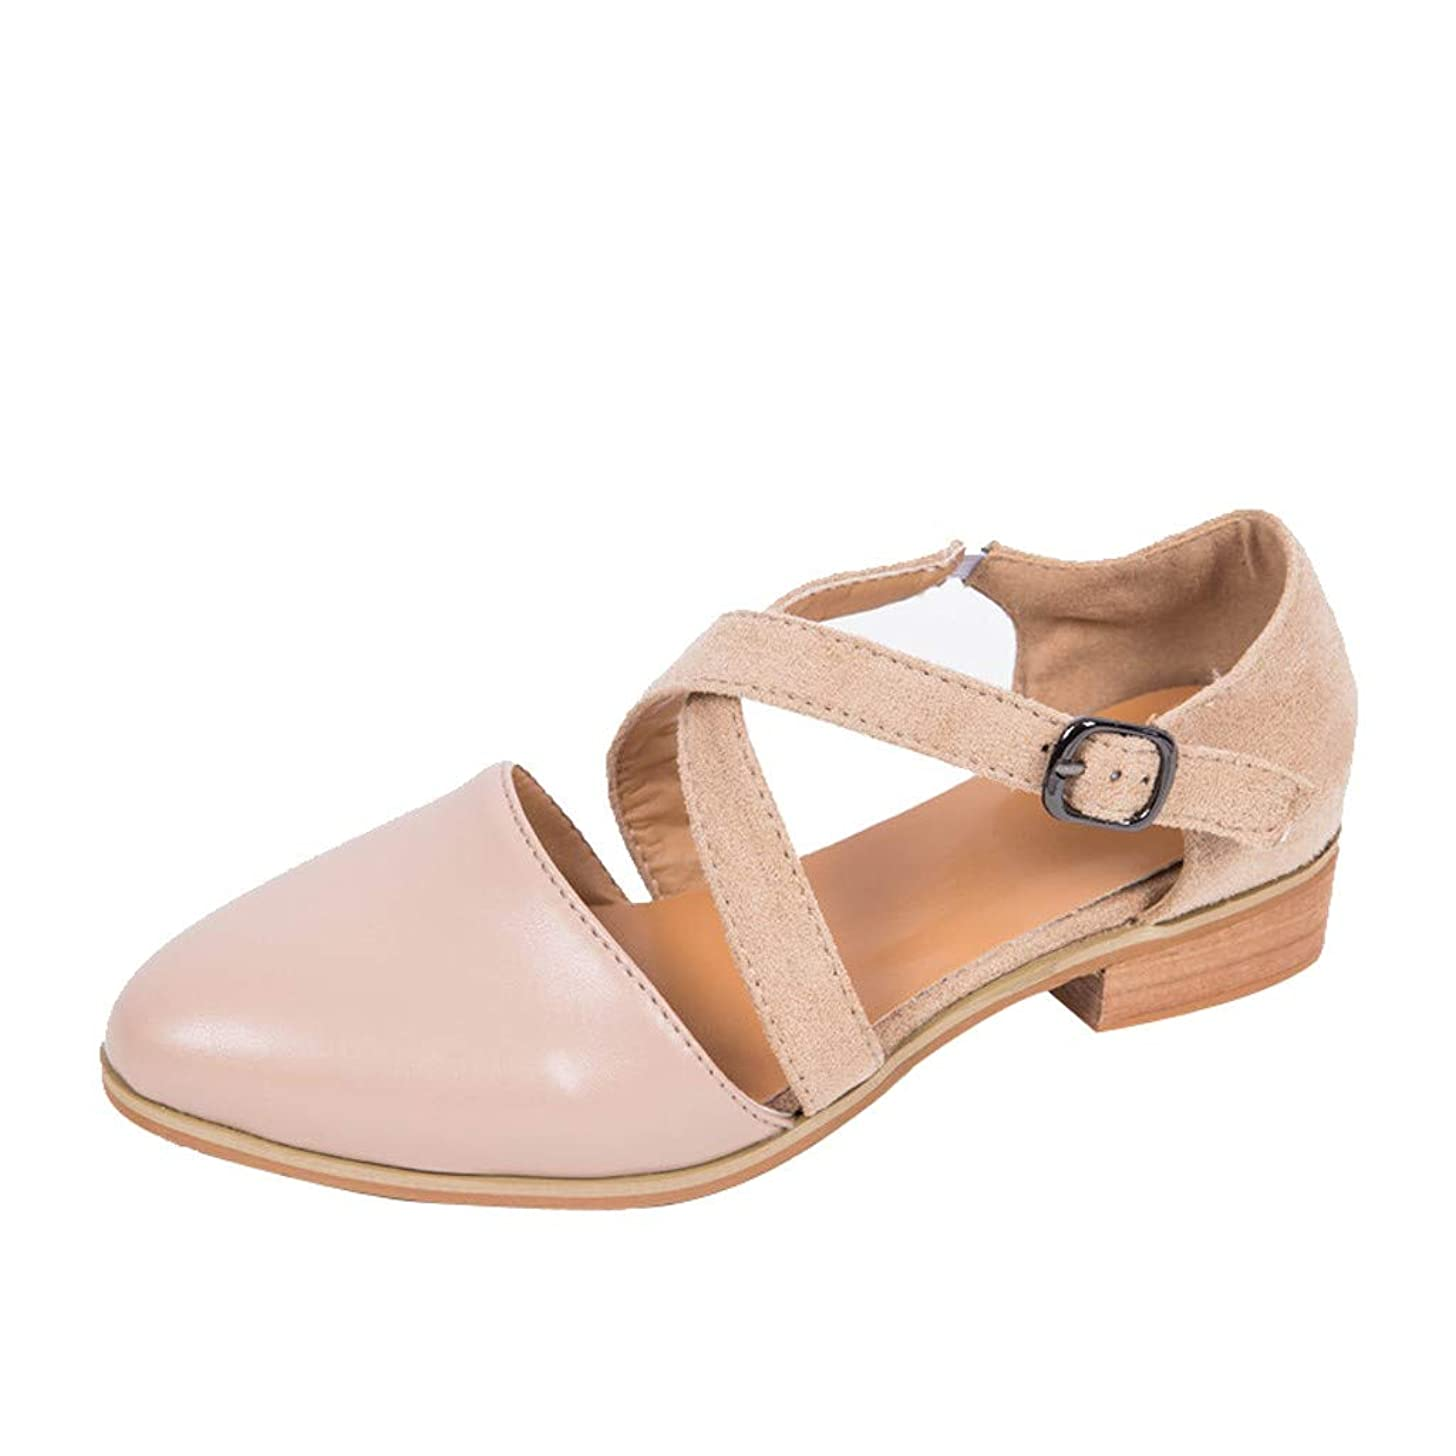 Women's Sweet Solid Pointed Toe Wild Shoes Across Strap Casual Ankle Single Buckle Roma Sandals JHKUNO